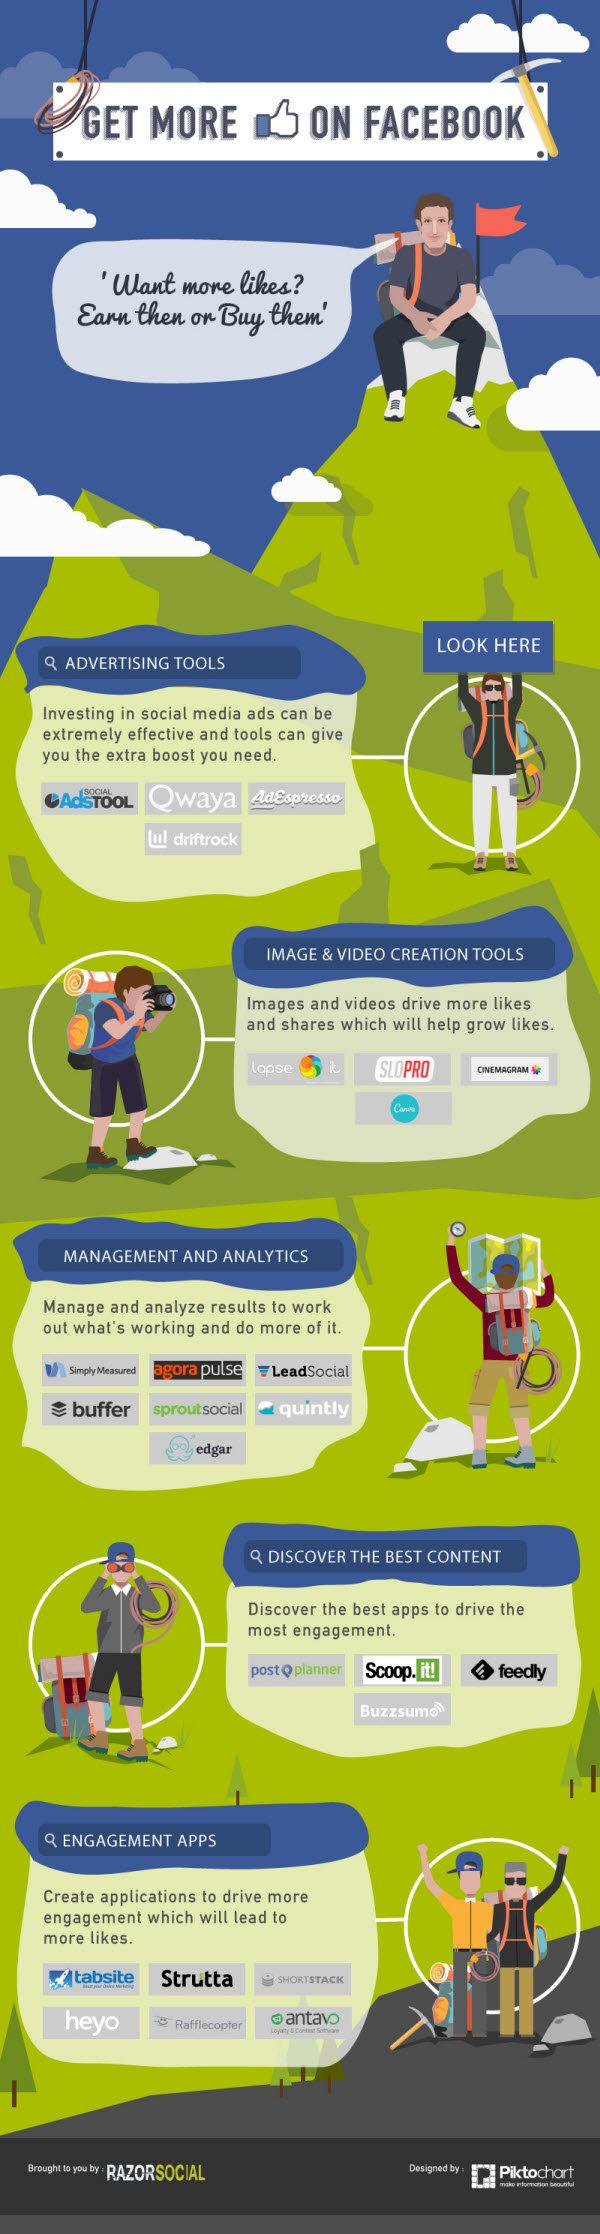 Want More Facebook Likes? Heres 25 Tools to Help Your Page Grow #Infographic